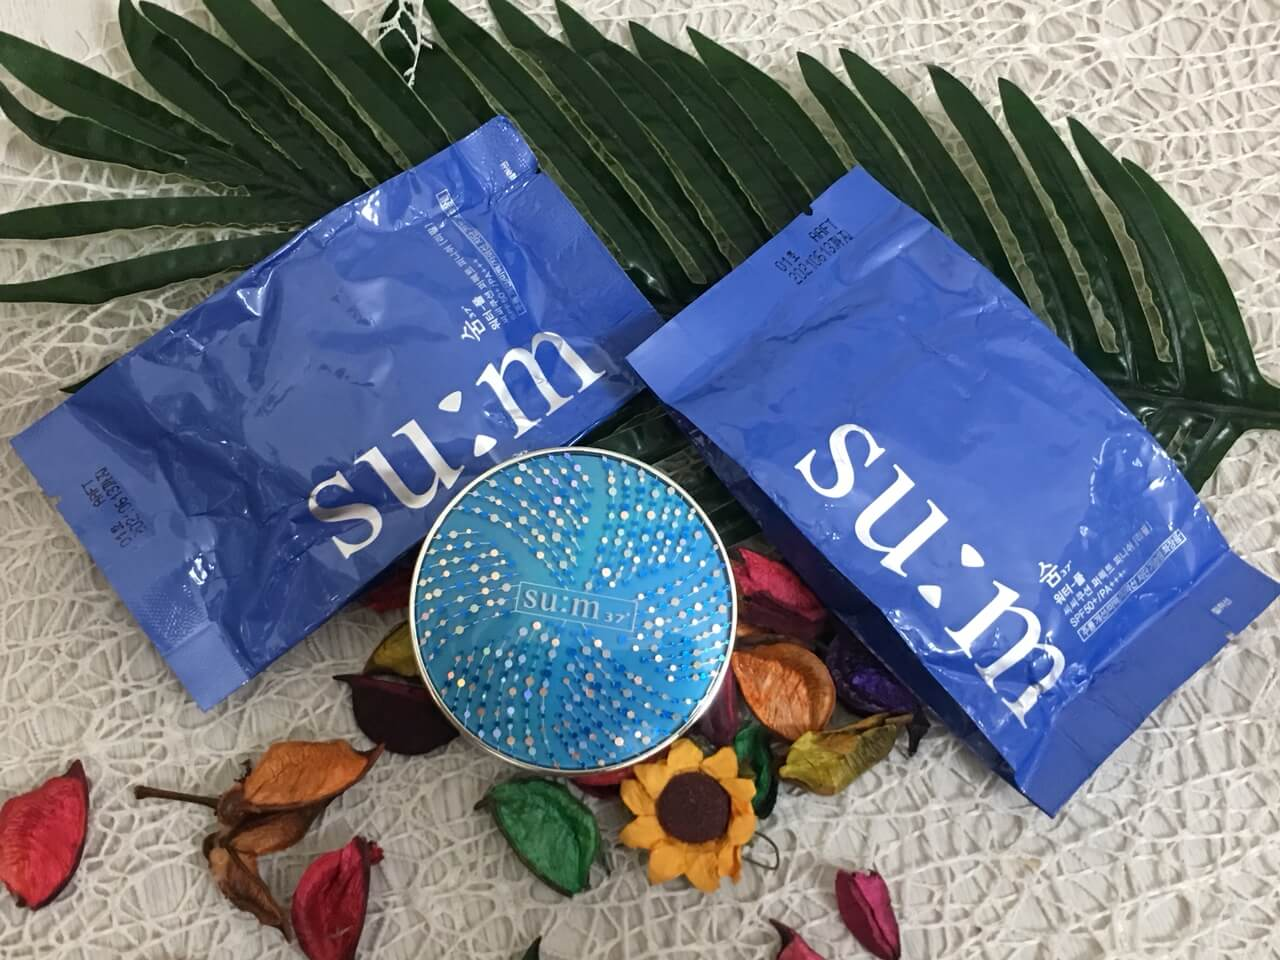 sum37-water-full-cc-cushion-perfect-finish-sieu-pham-danh-rieng-cho-da-dau-01